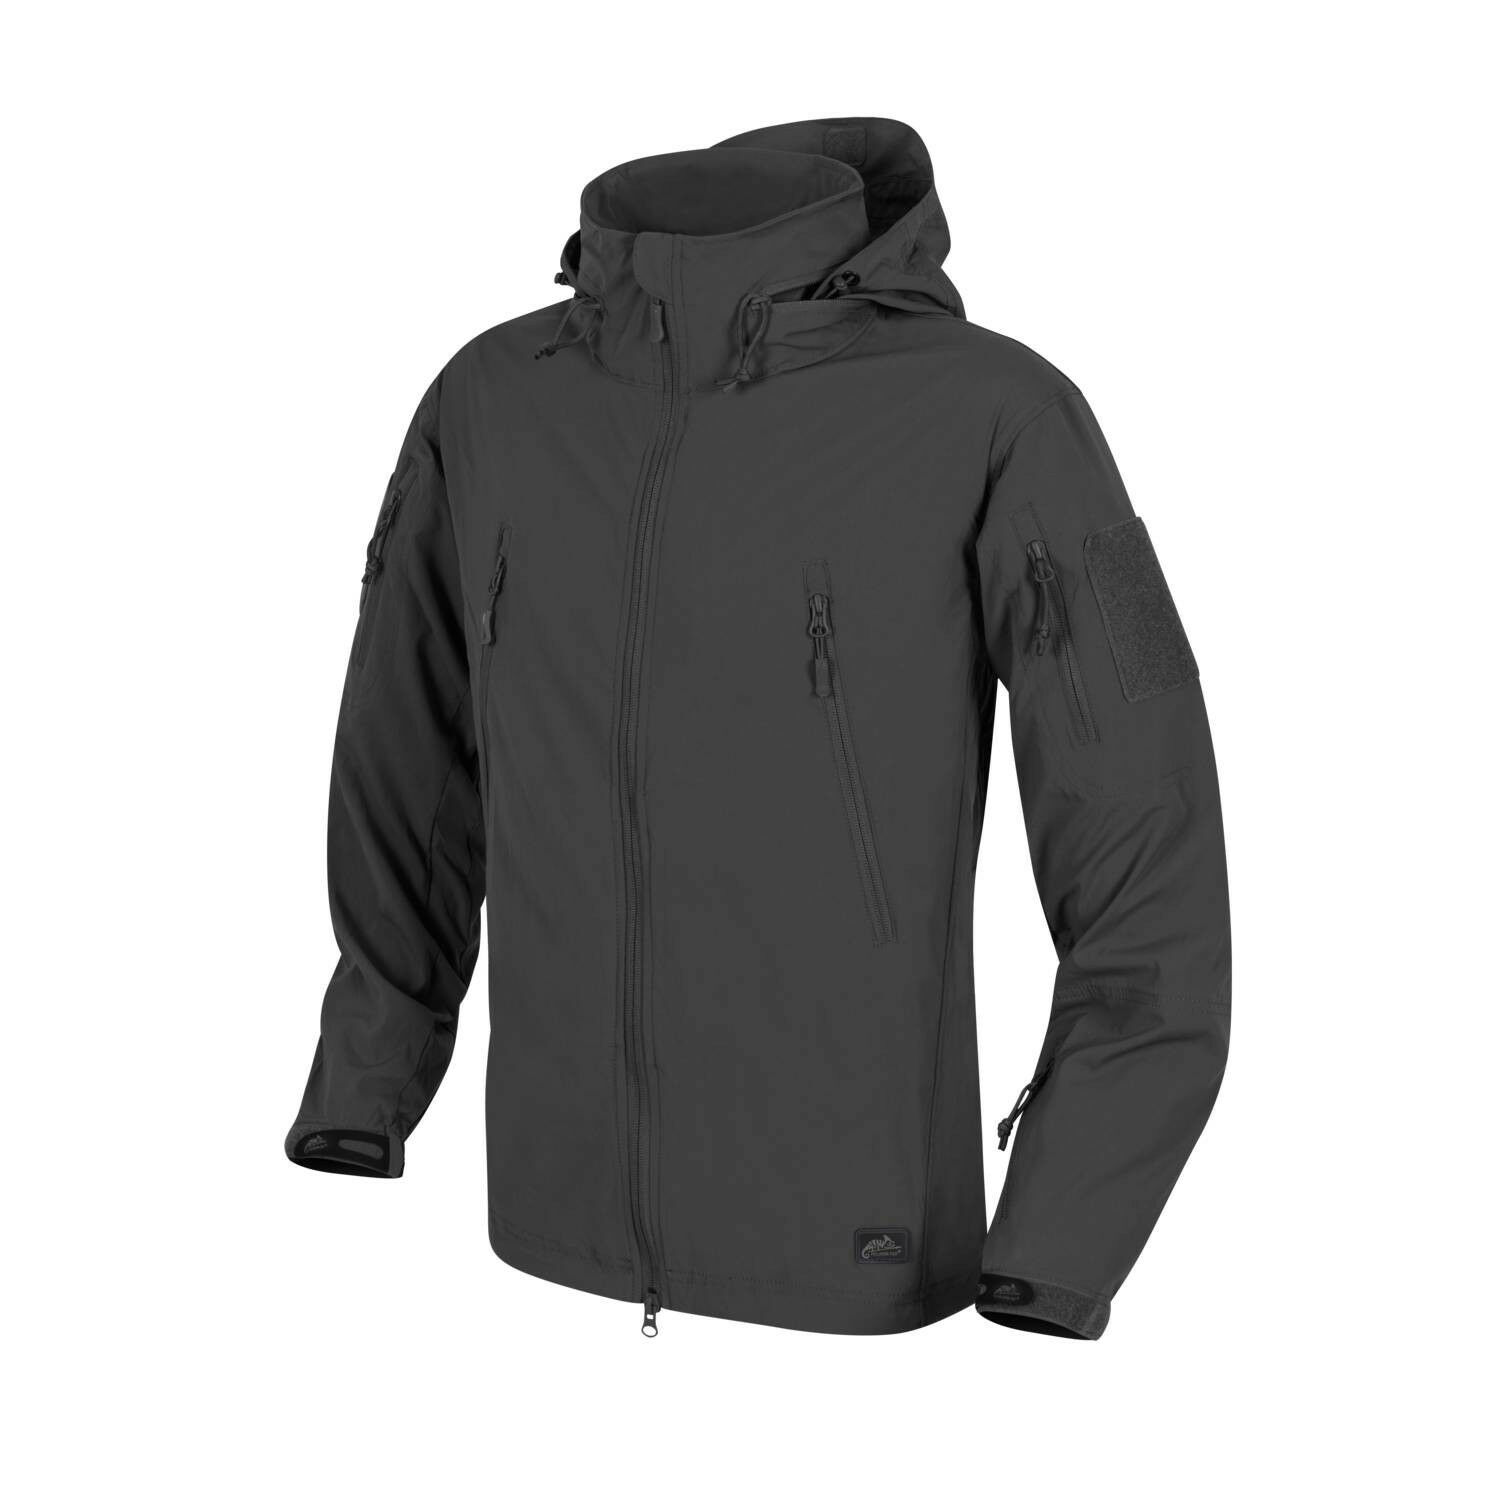 Helikon TEX TROOPER Giacca stormstretch Outdoor Giacca Softshell Nero XXLarge